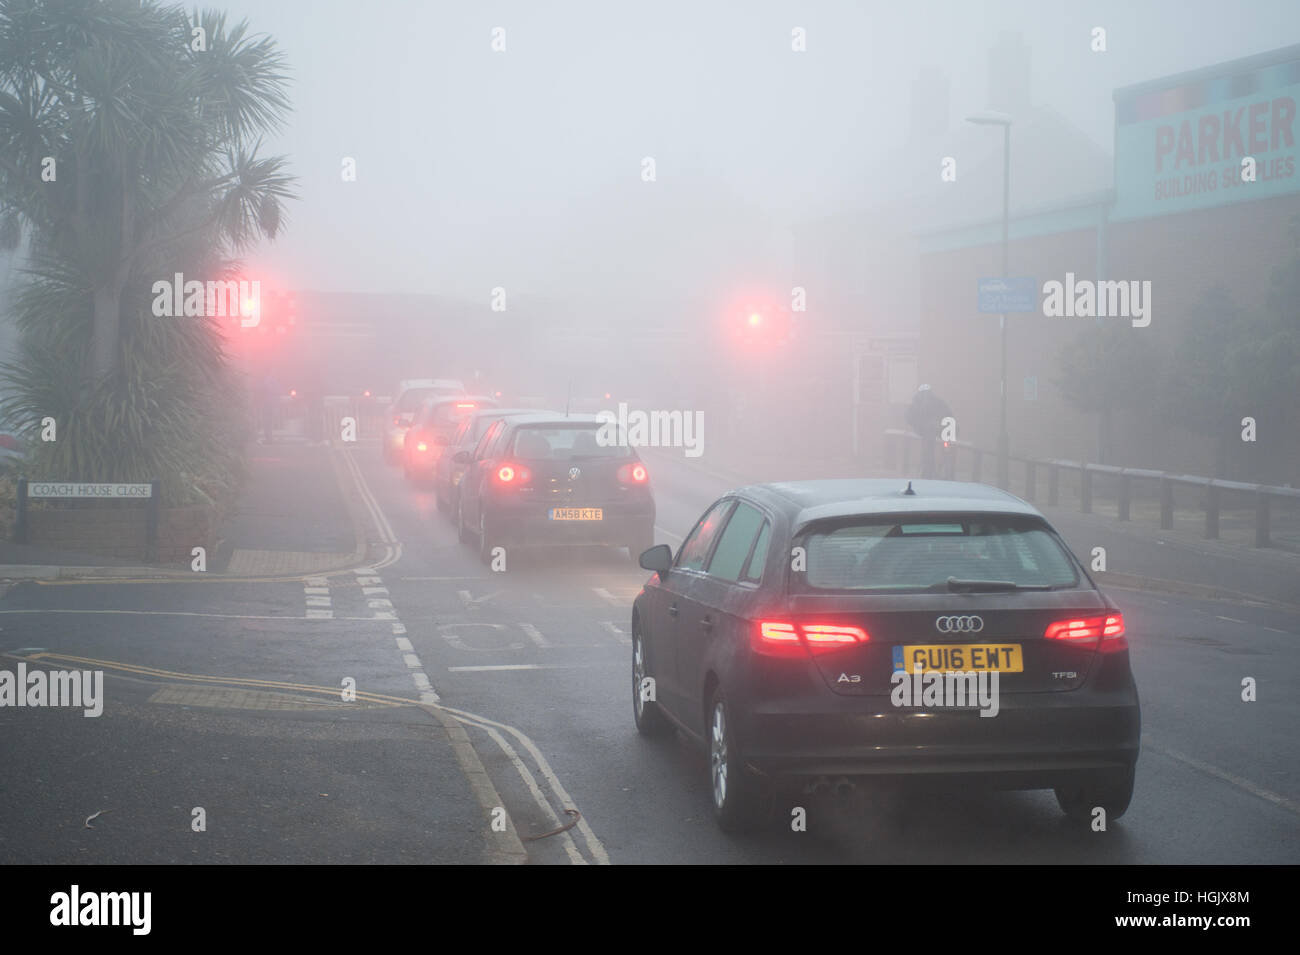 On a foggy morning queuing cars wait in a line of traffic at a railway level crossing in West Sussex, England, UK. - Stock Photo